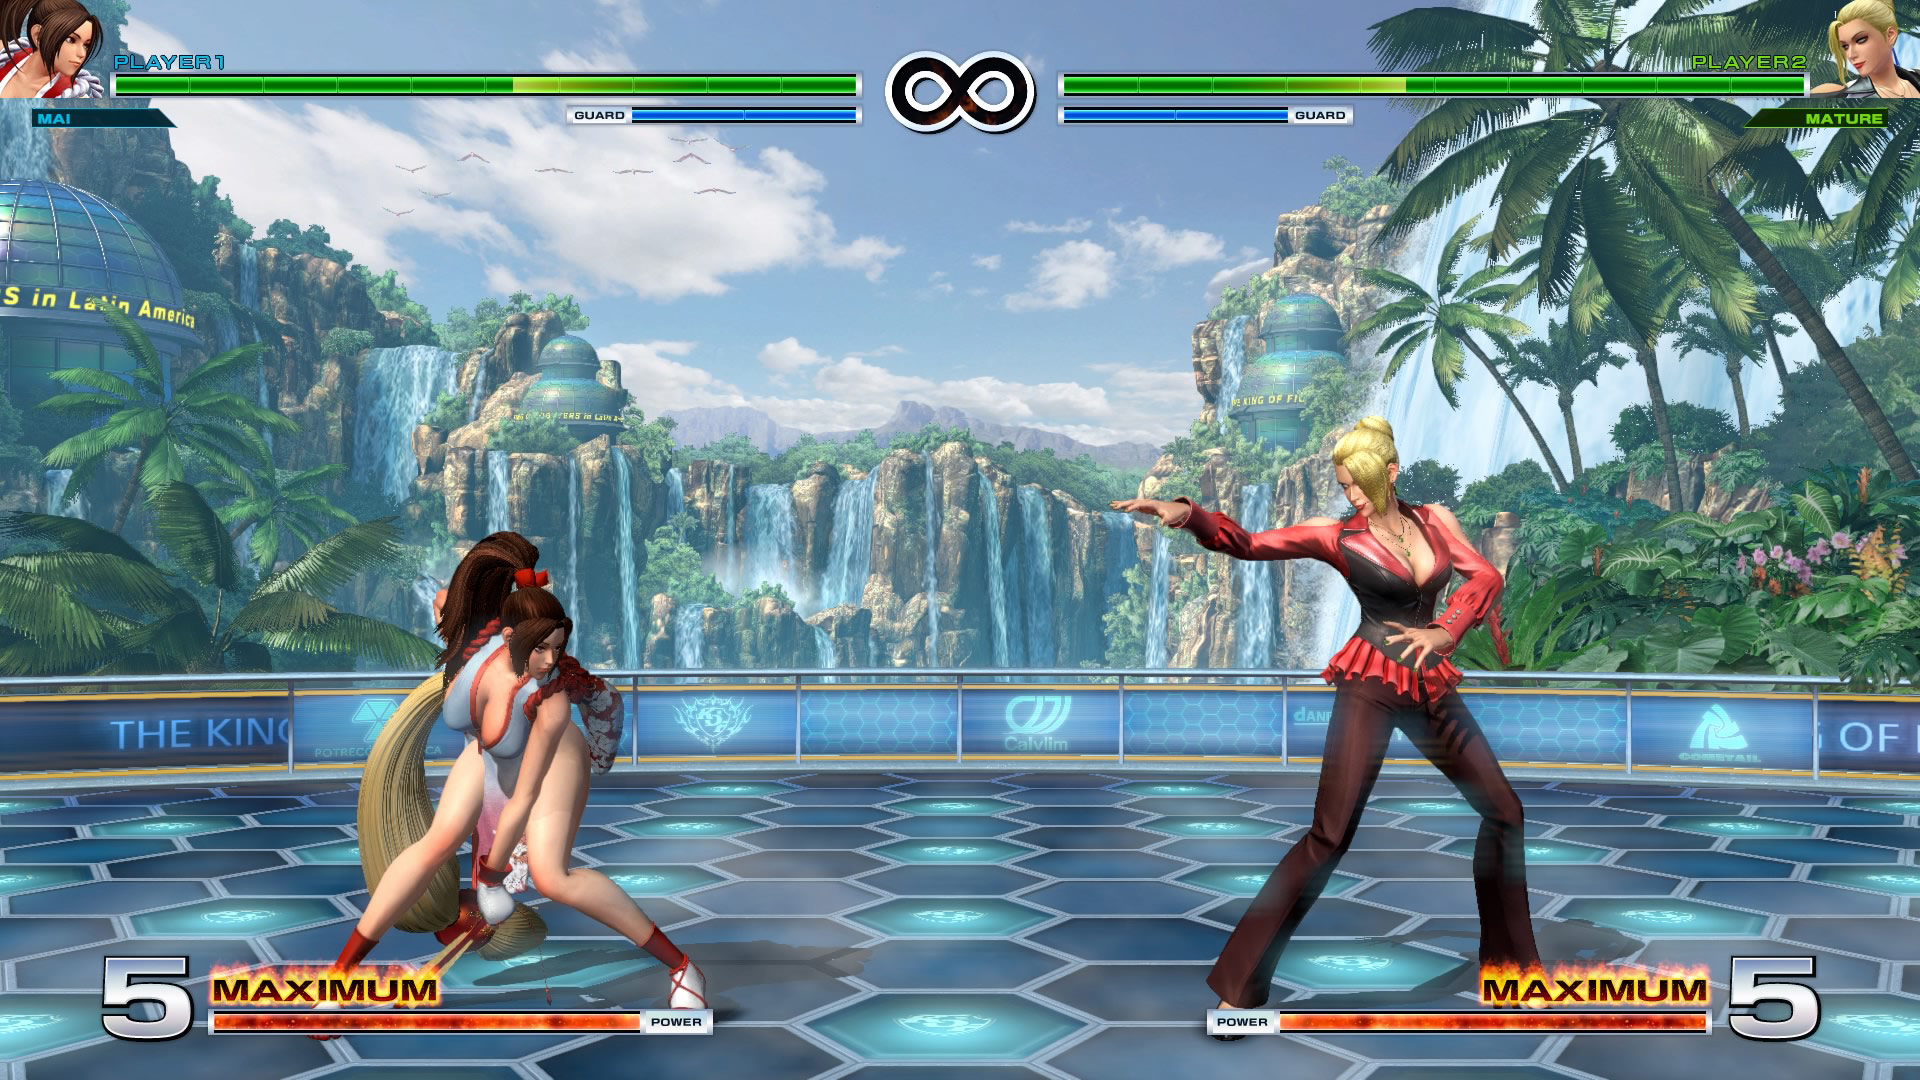 King of Fighters 14 1.10 graphics update 39 out of 60 image gallery